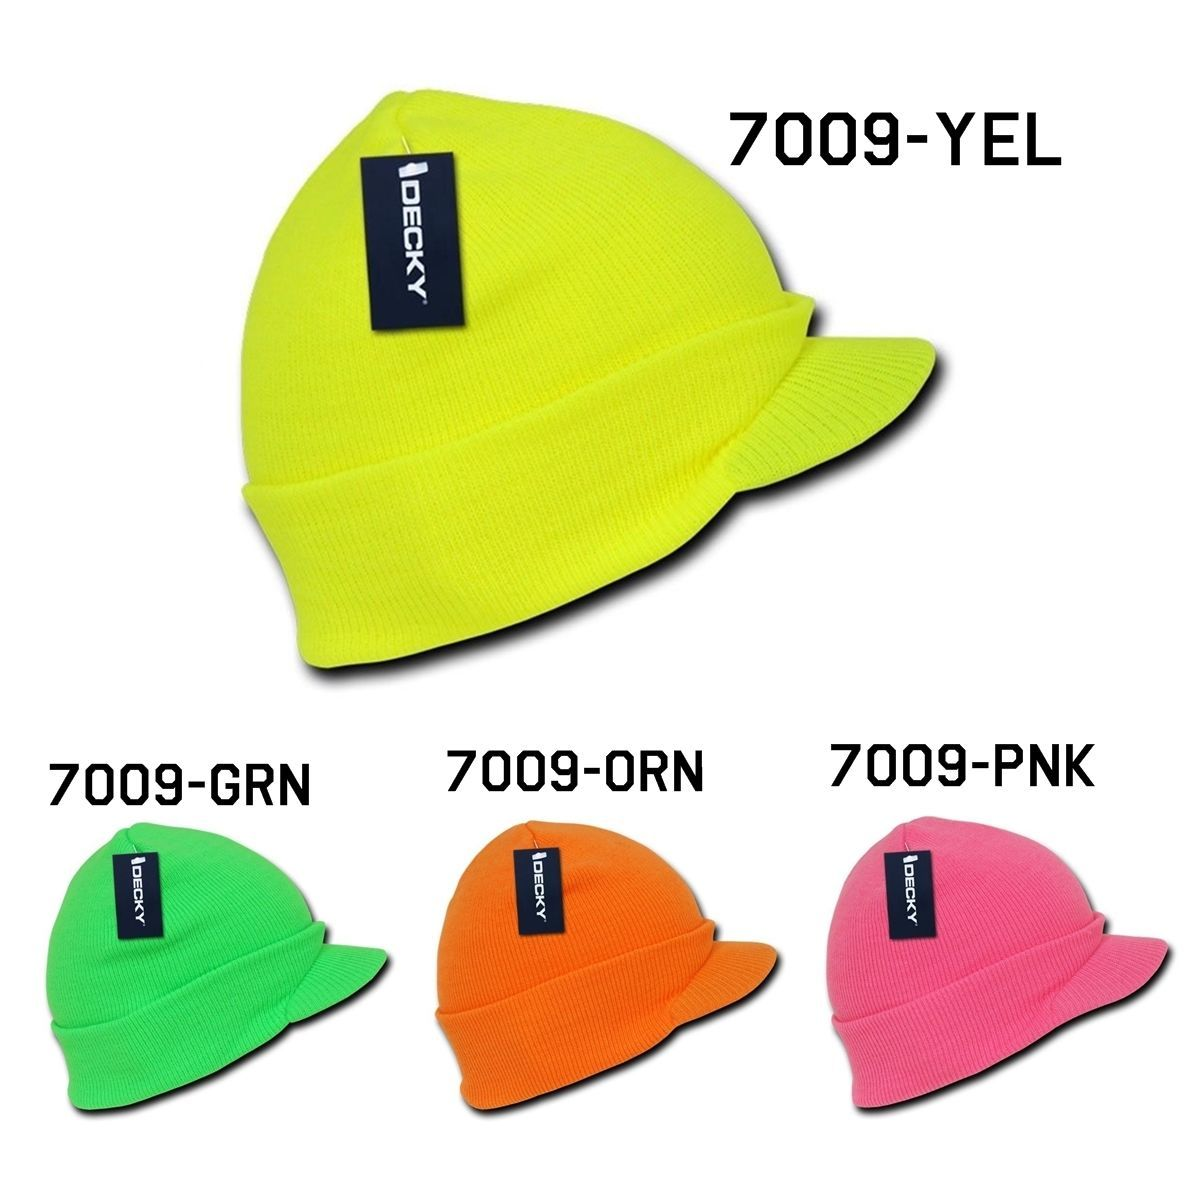 CUSTOM EMBROIDERY Personalized Customized Decky Neon Jeep Precurved Visor 7009